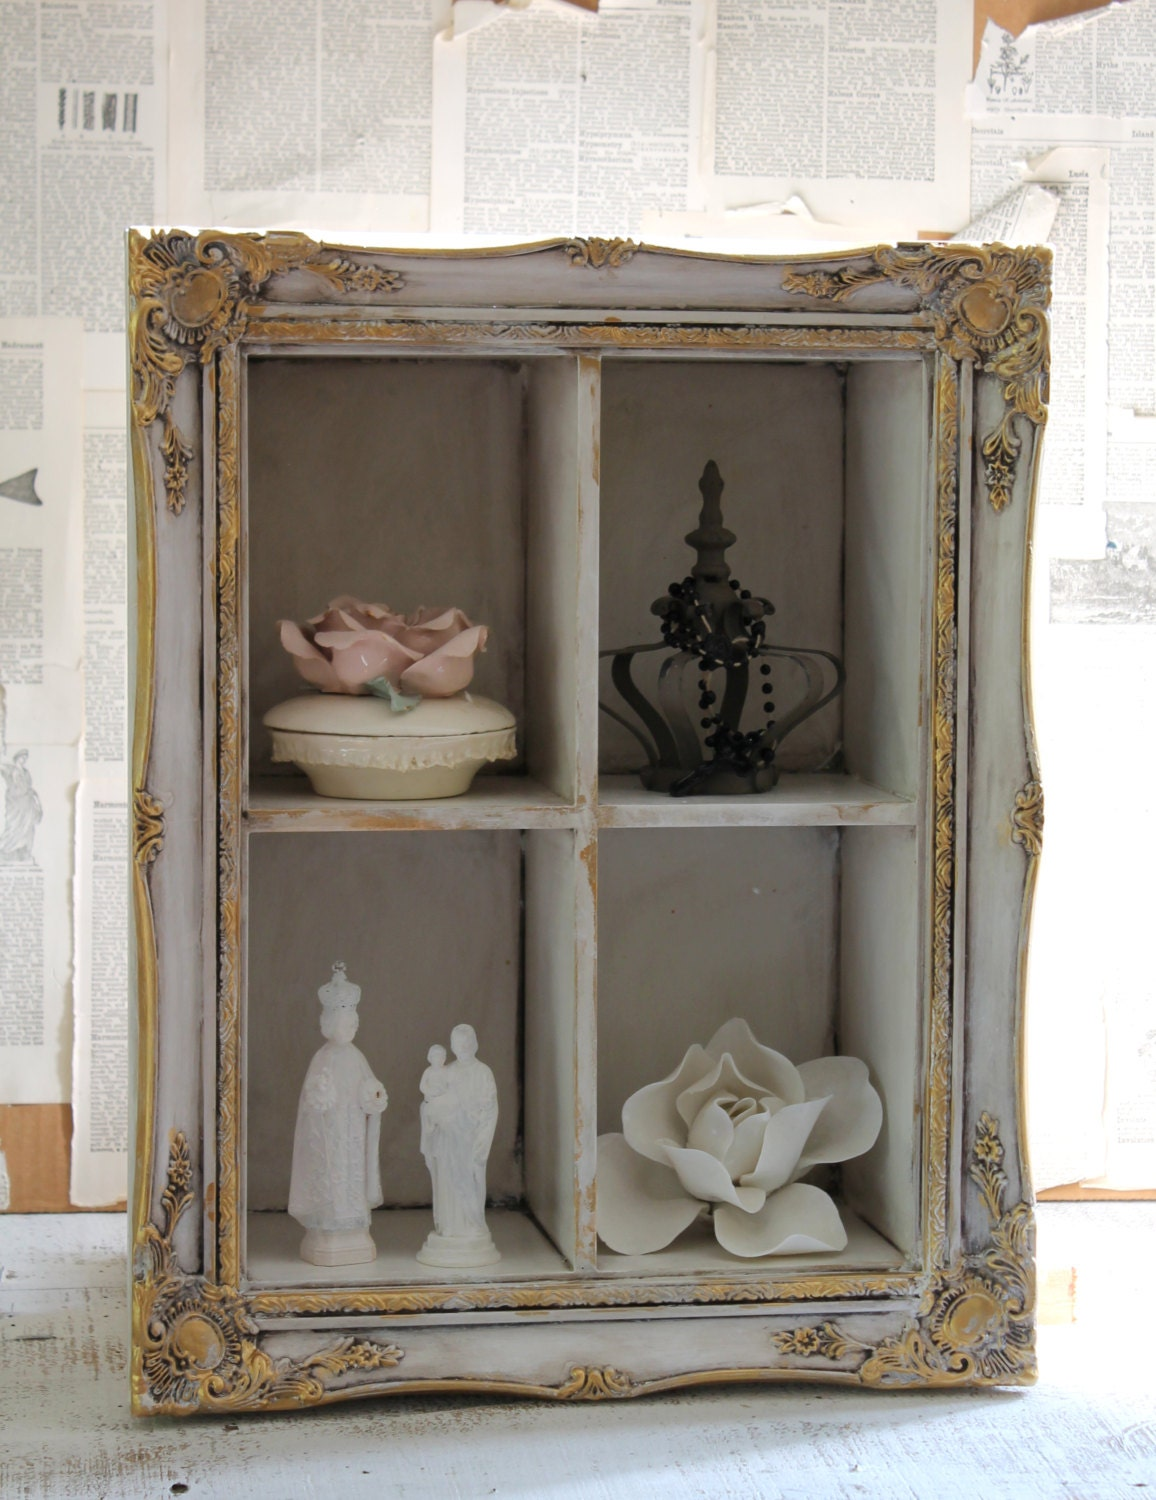 French country ornate display shelf wall shelf shadow box wall for French country shelves